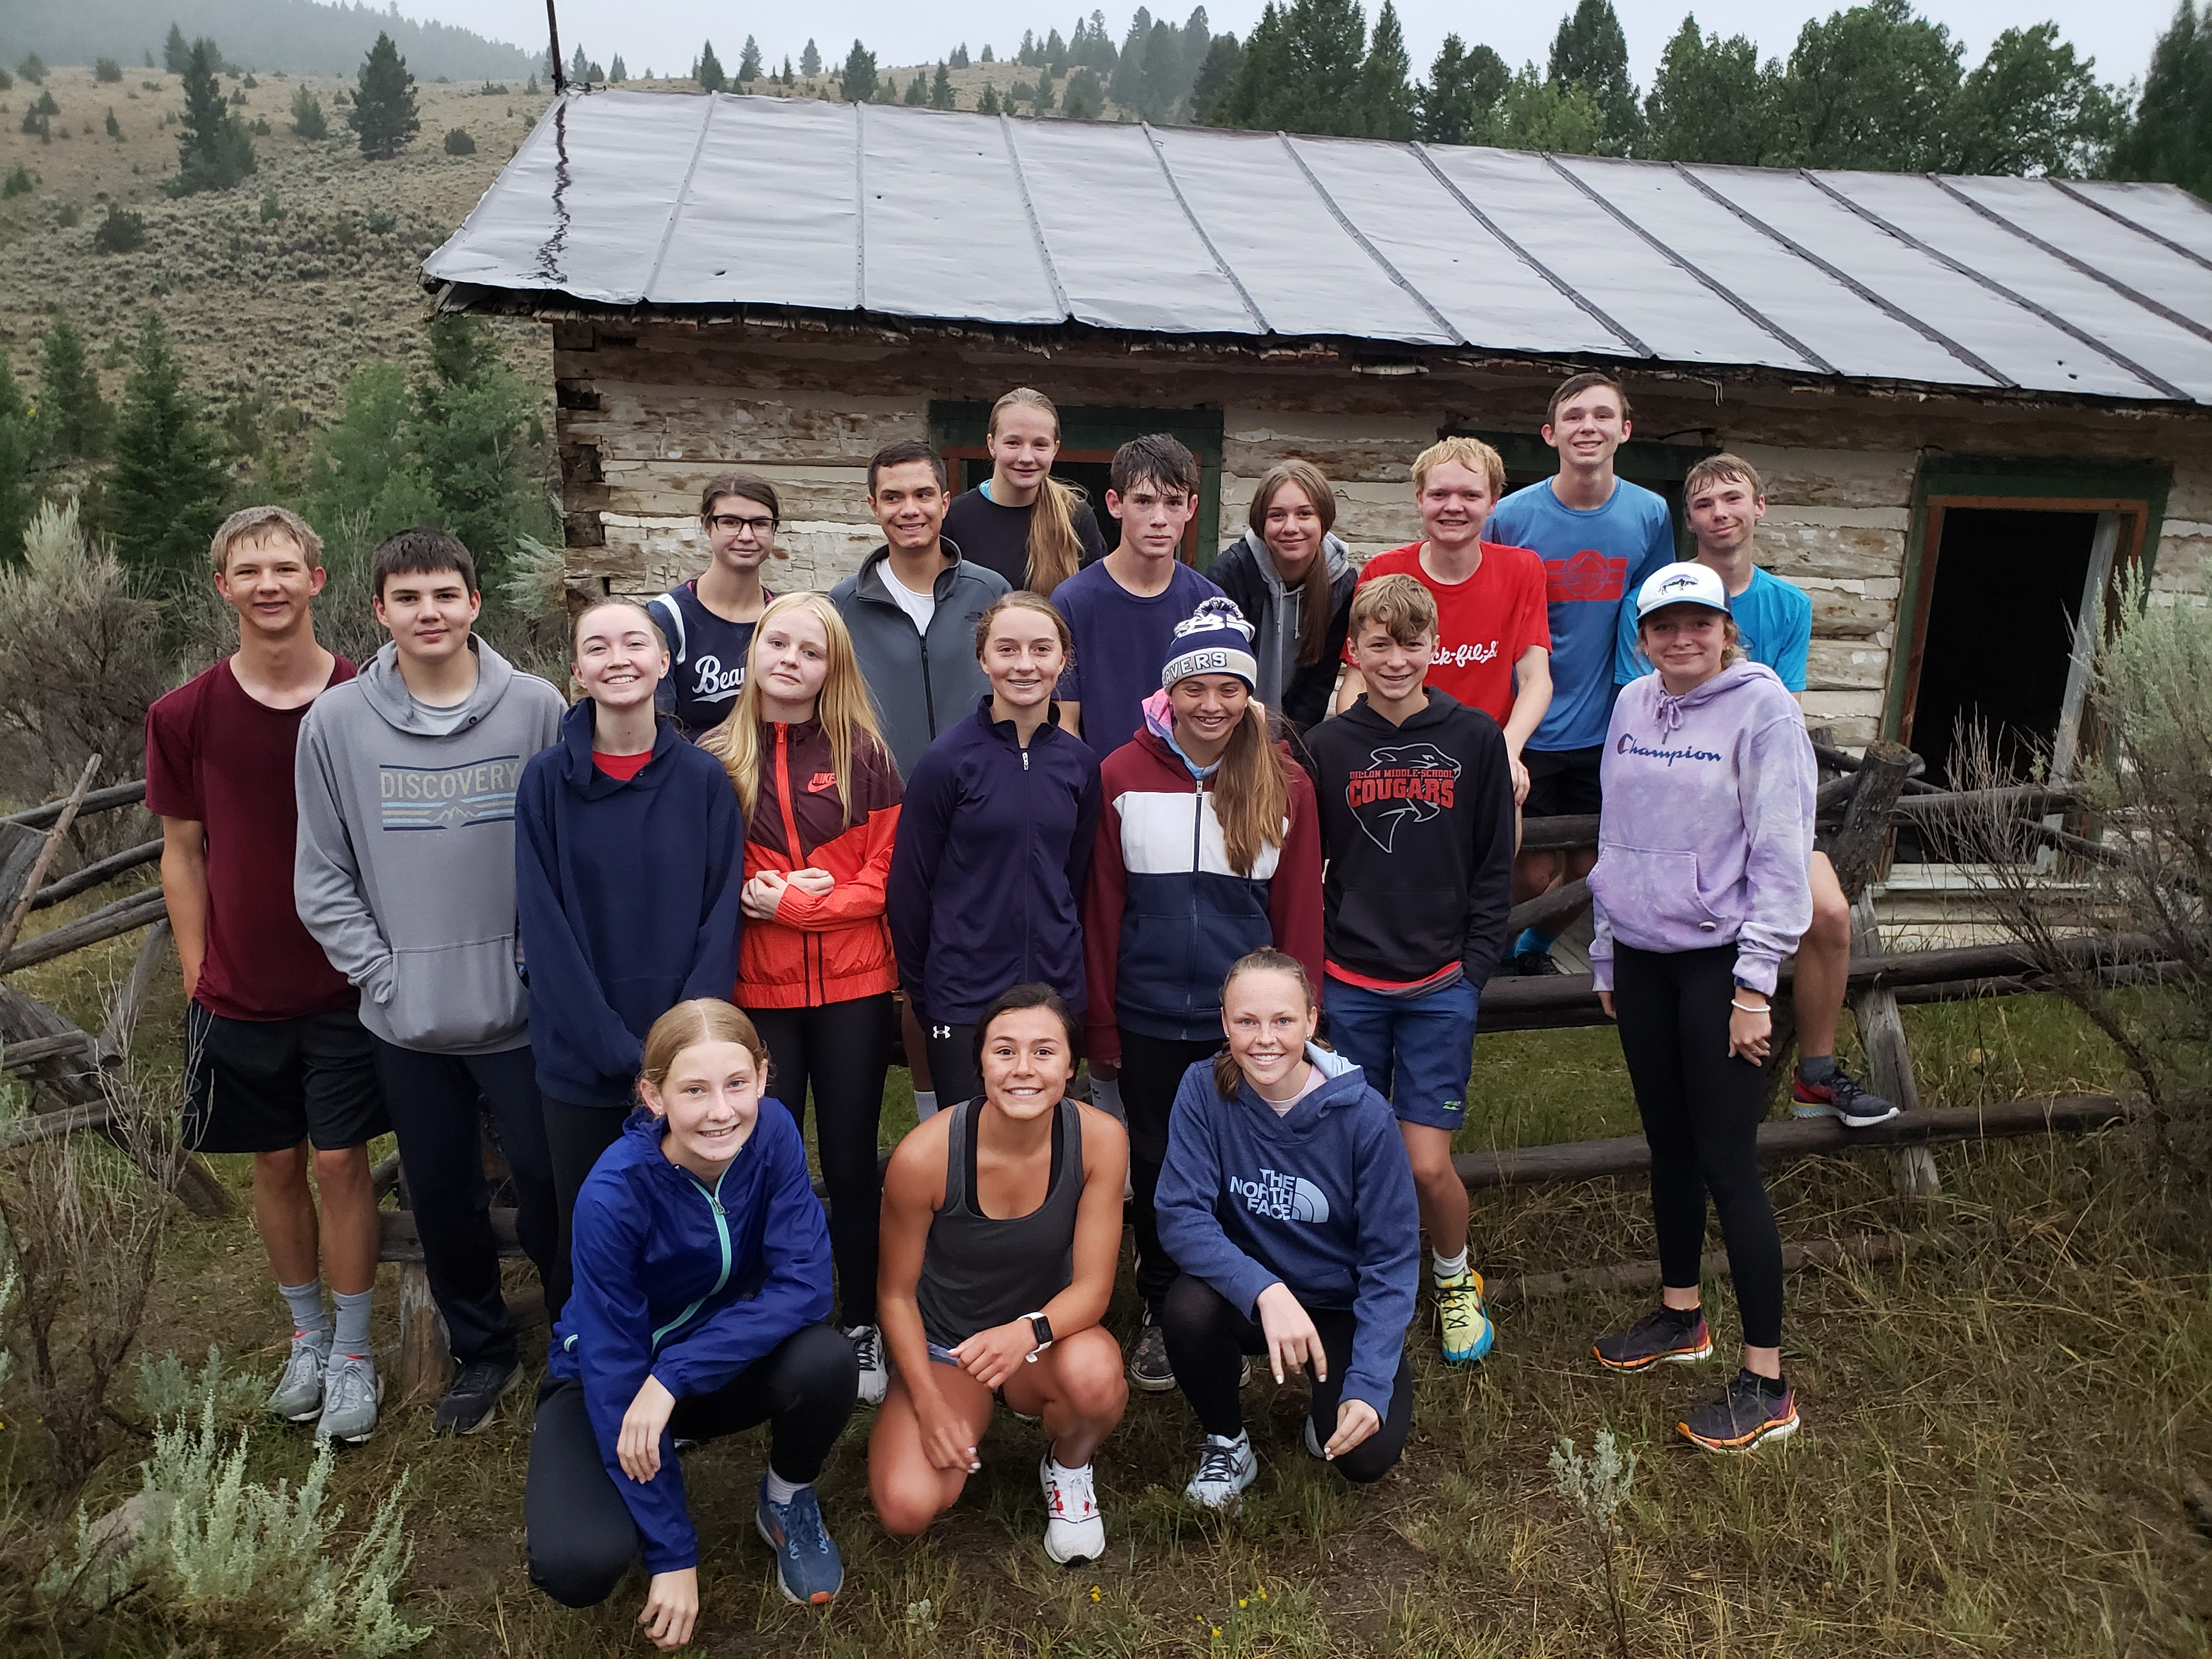 A photo of the Cross Country team outside